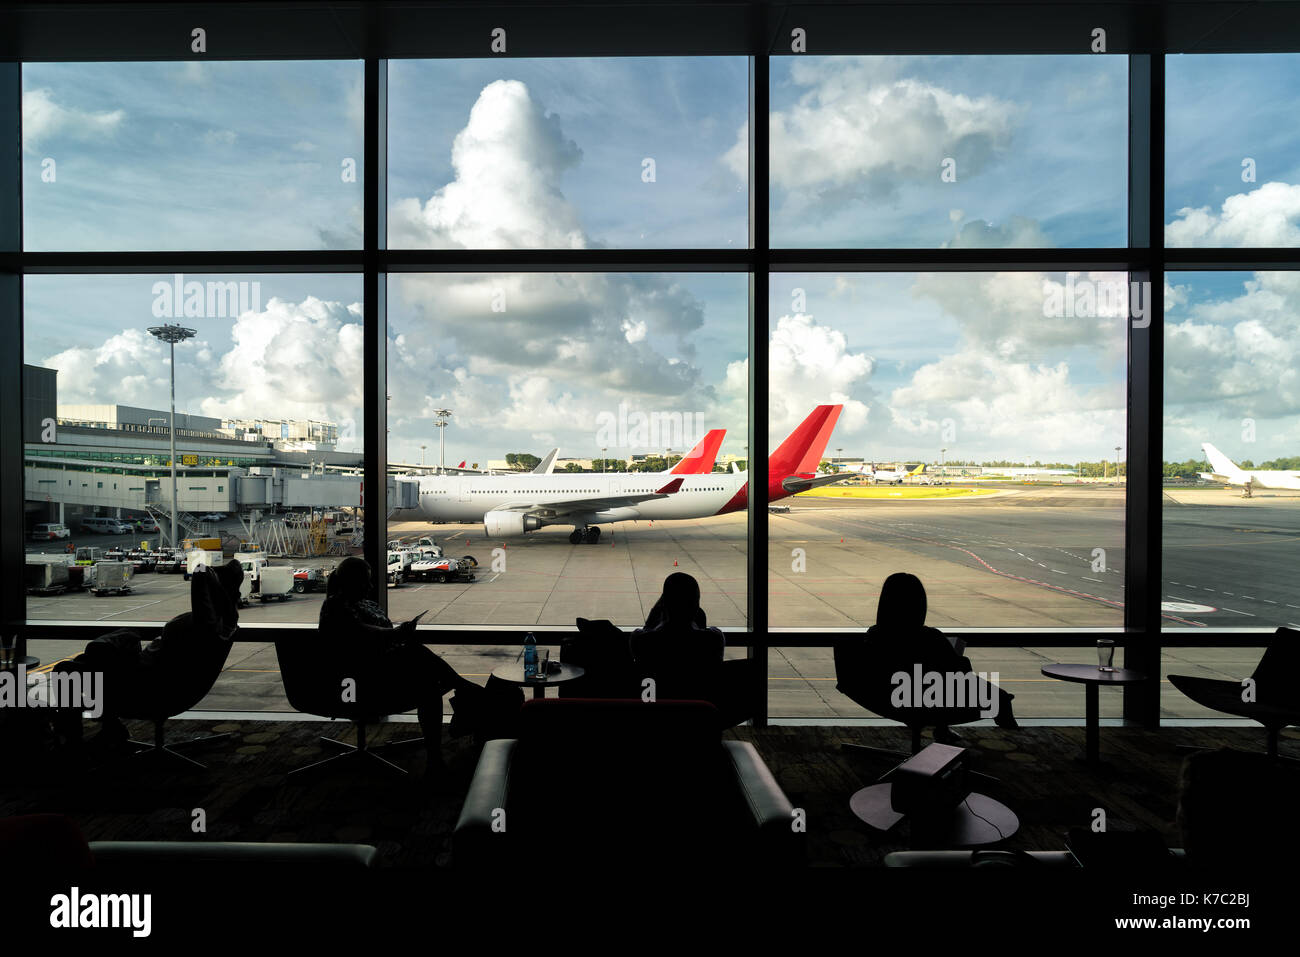 Silhouette of passenger waiting flight for travel in lounge at airport terminal. Interior airport. - Stock Image